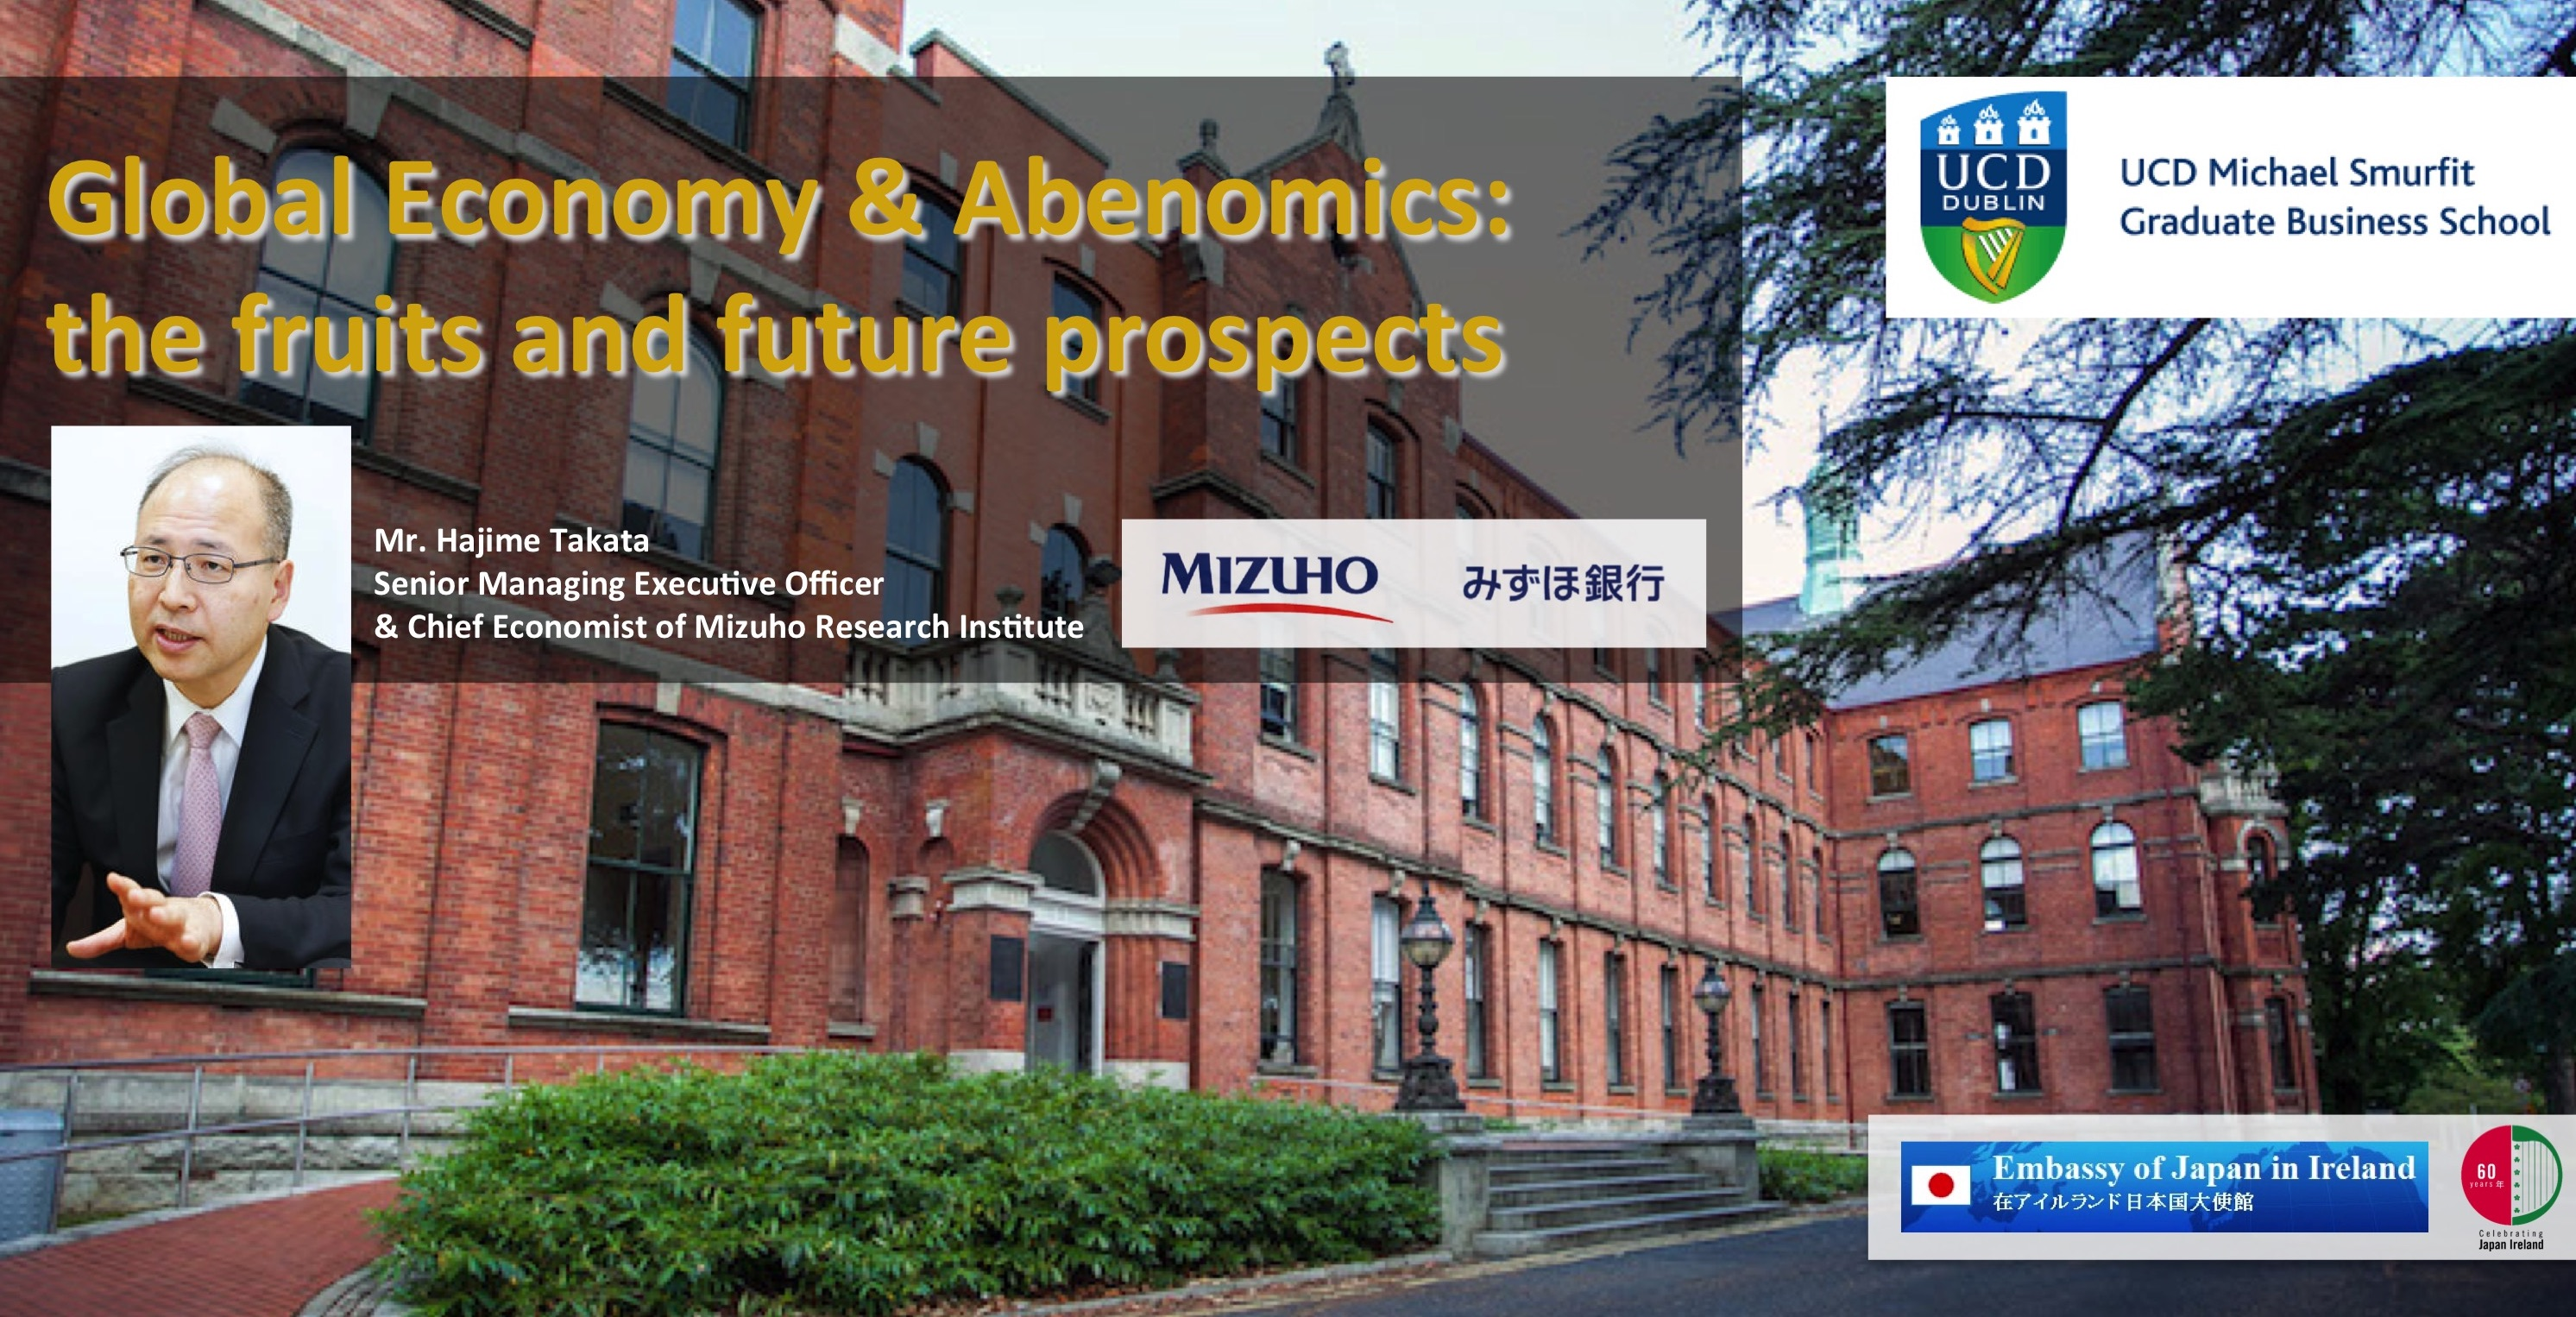 Seminar - Global Economy & Abenomics: the fruits & future prospects